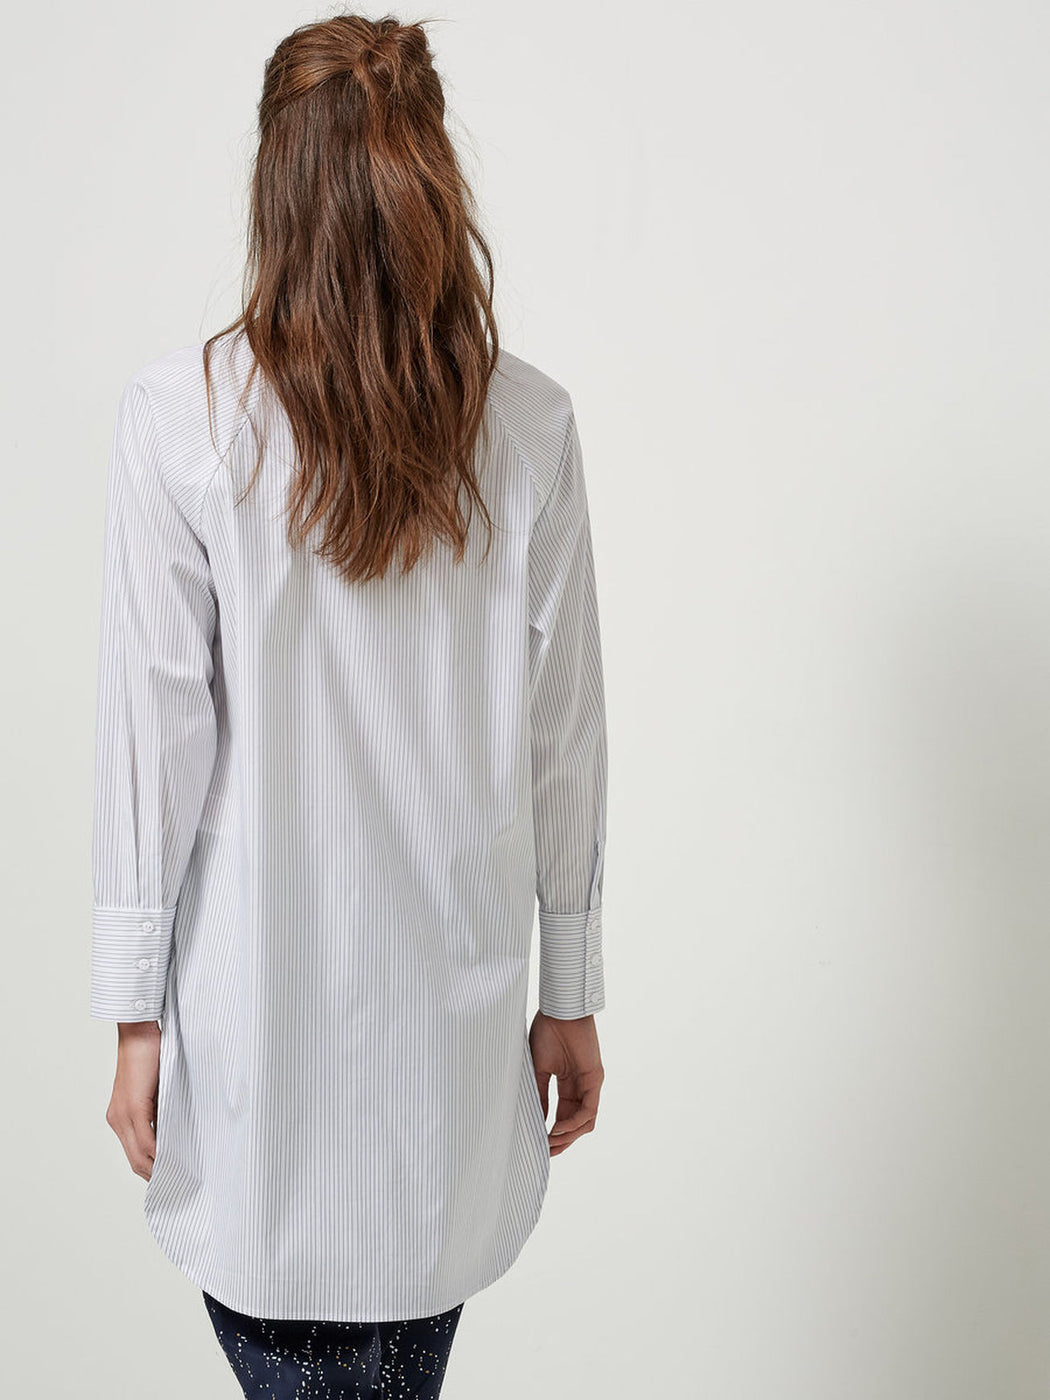 Balia Shirt White/Blue